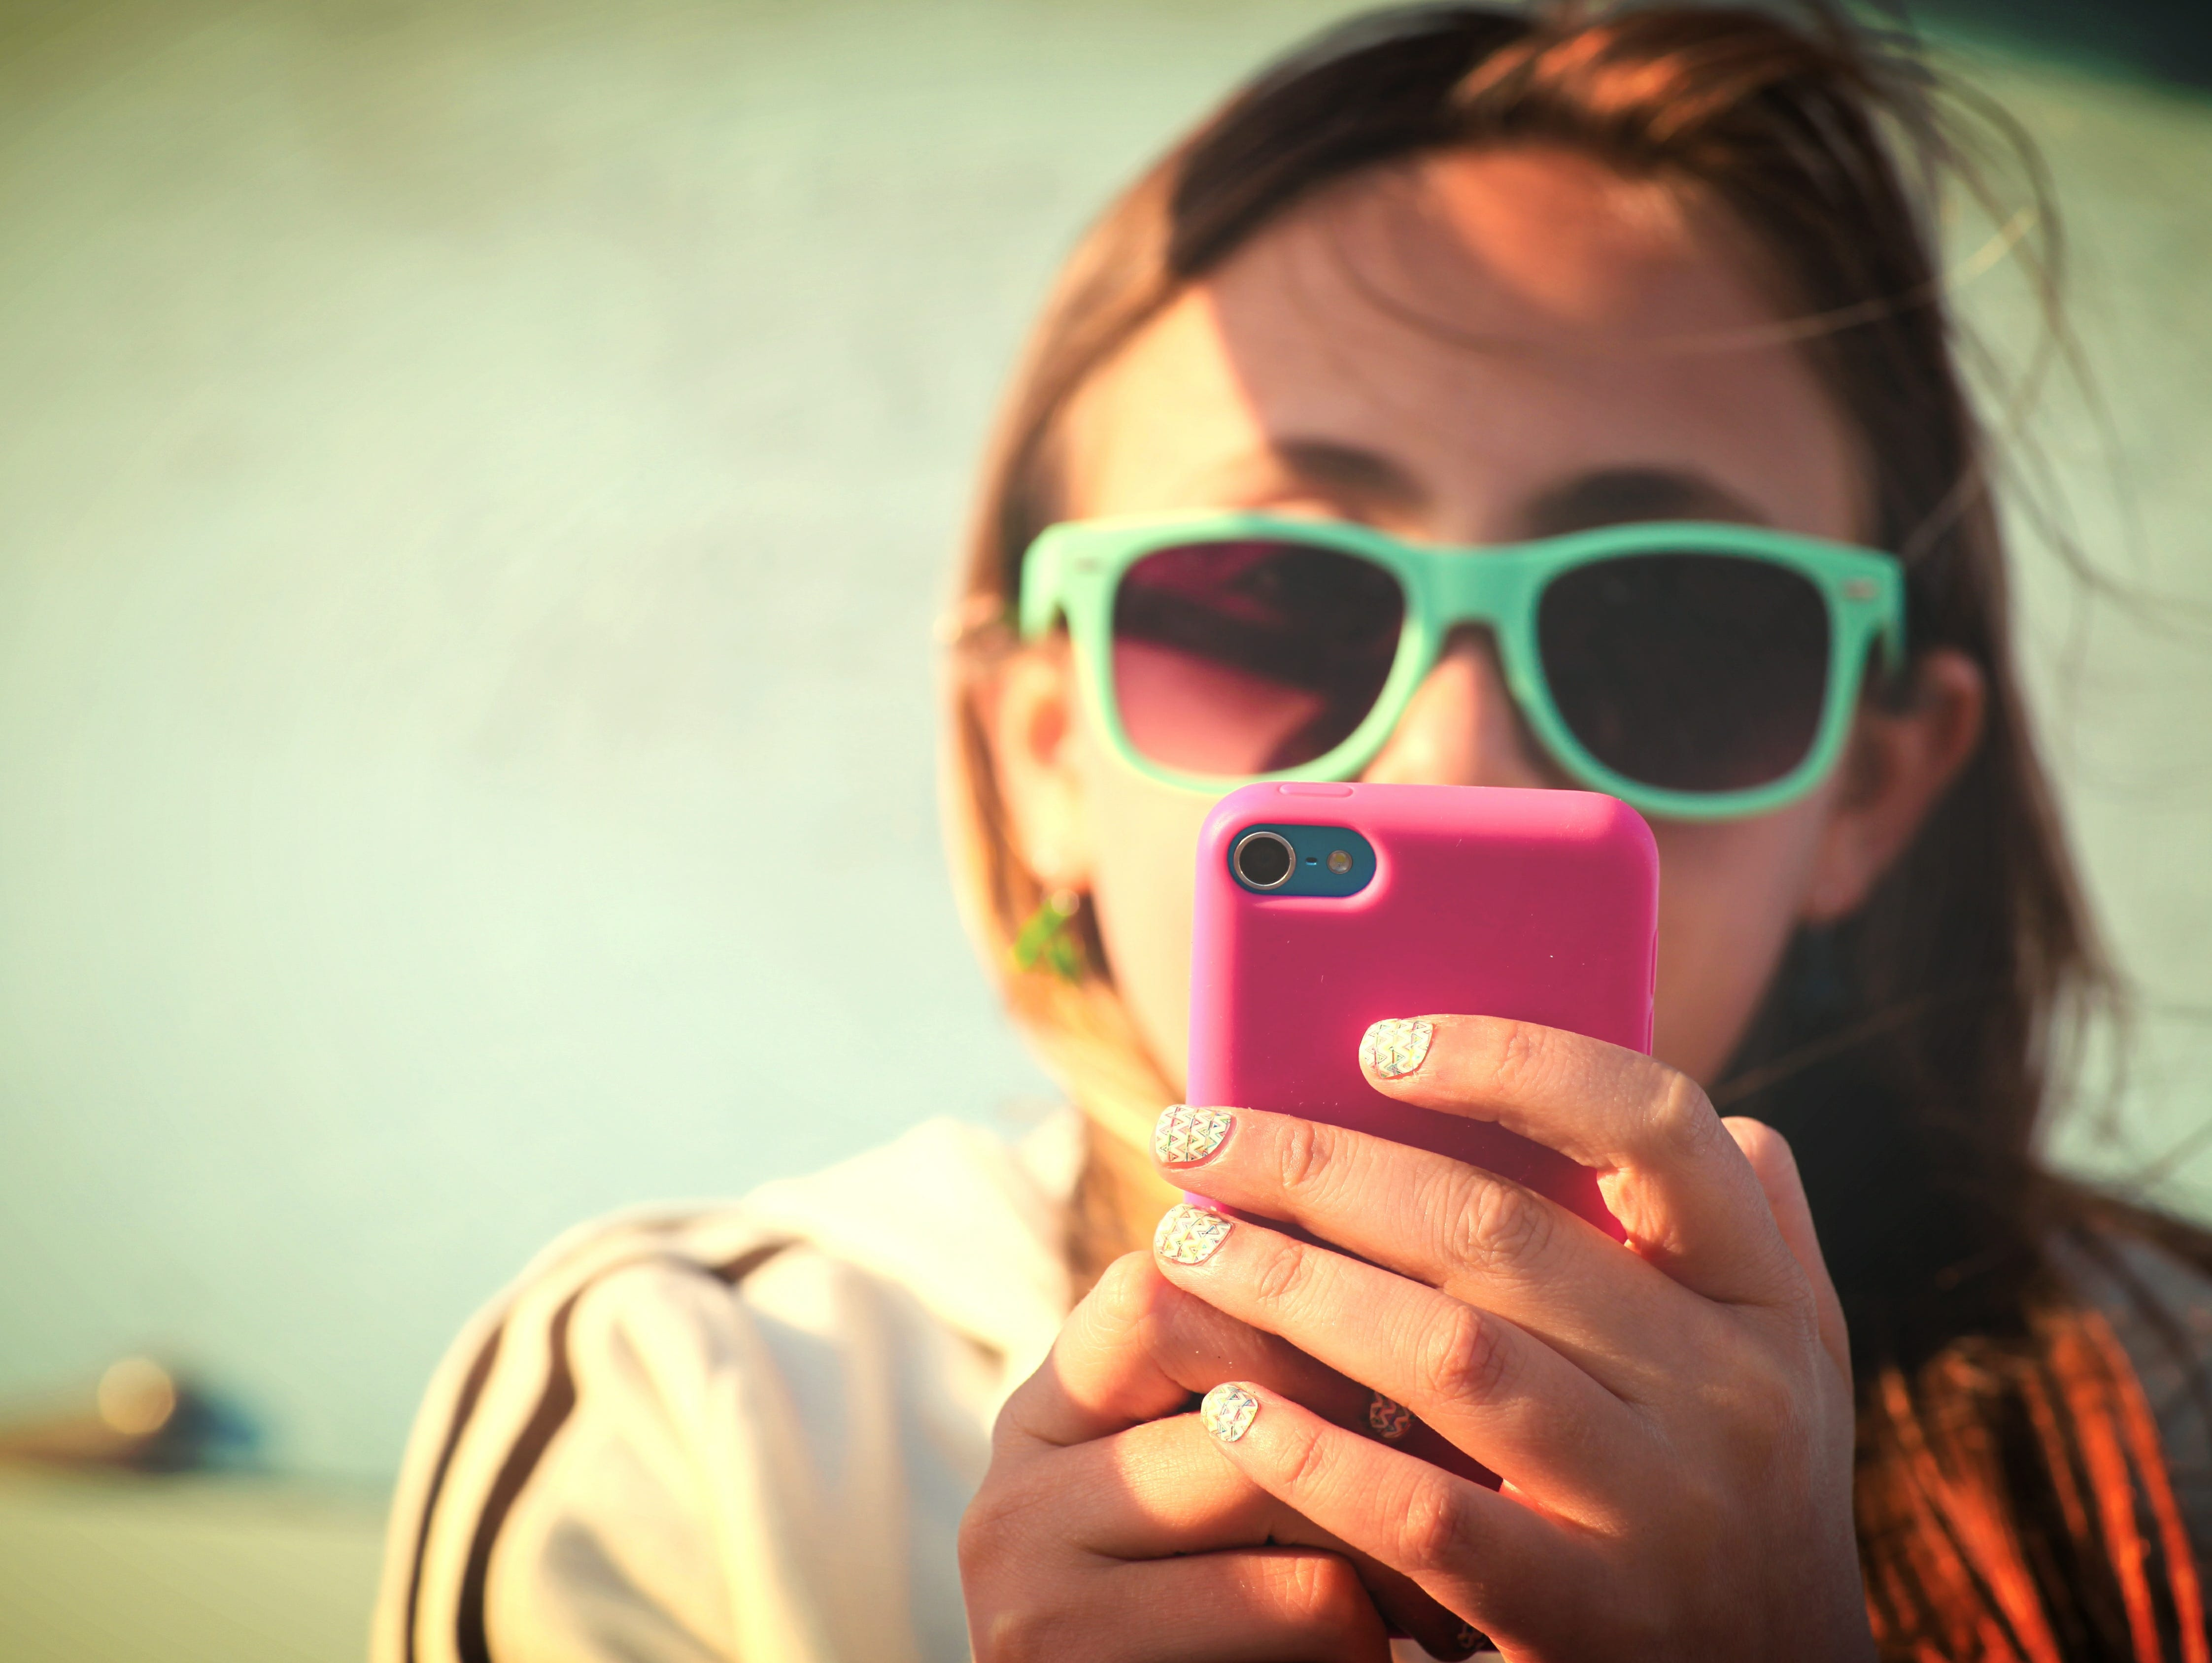 Communicating with teenagers over texting